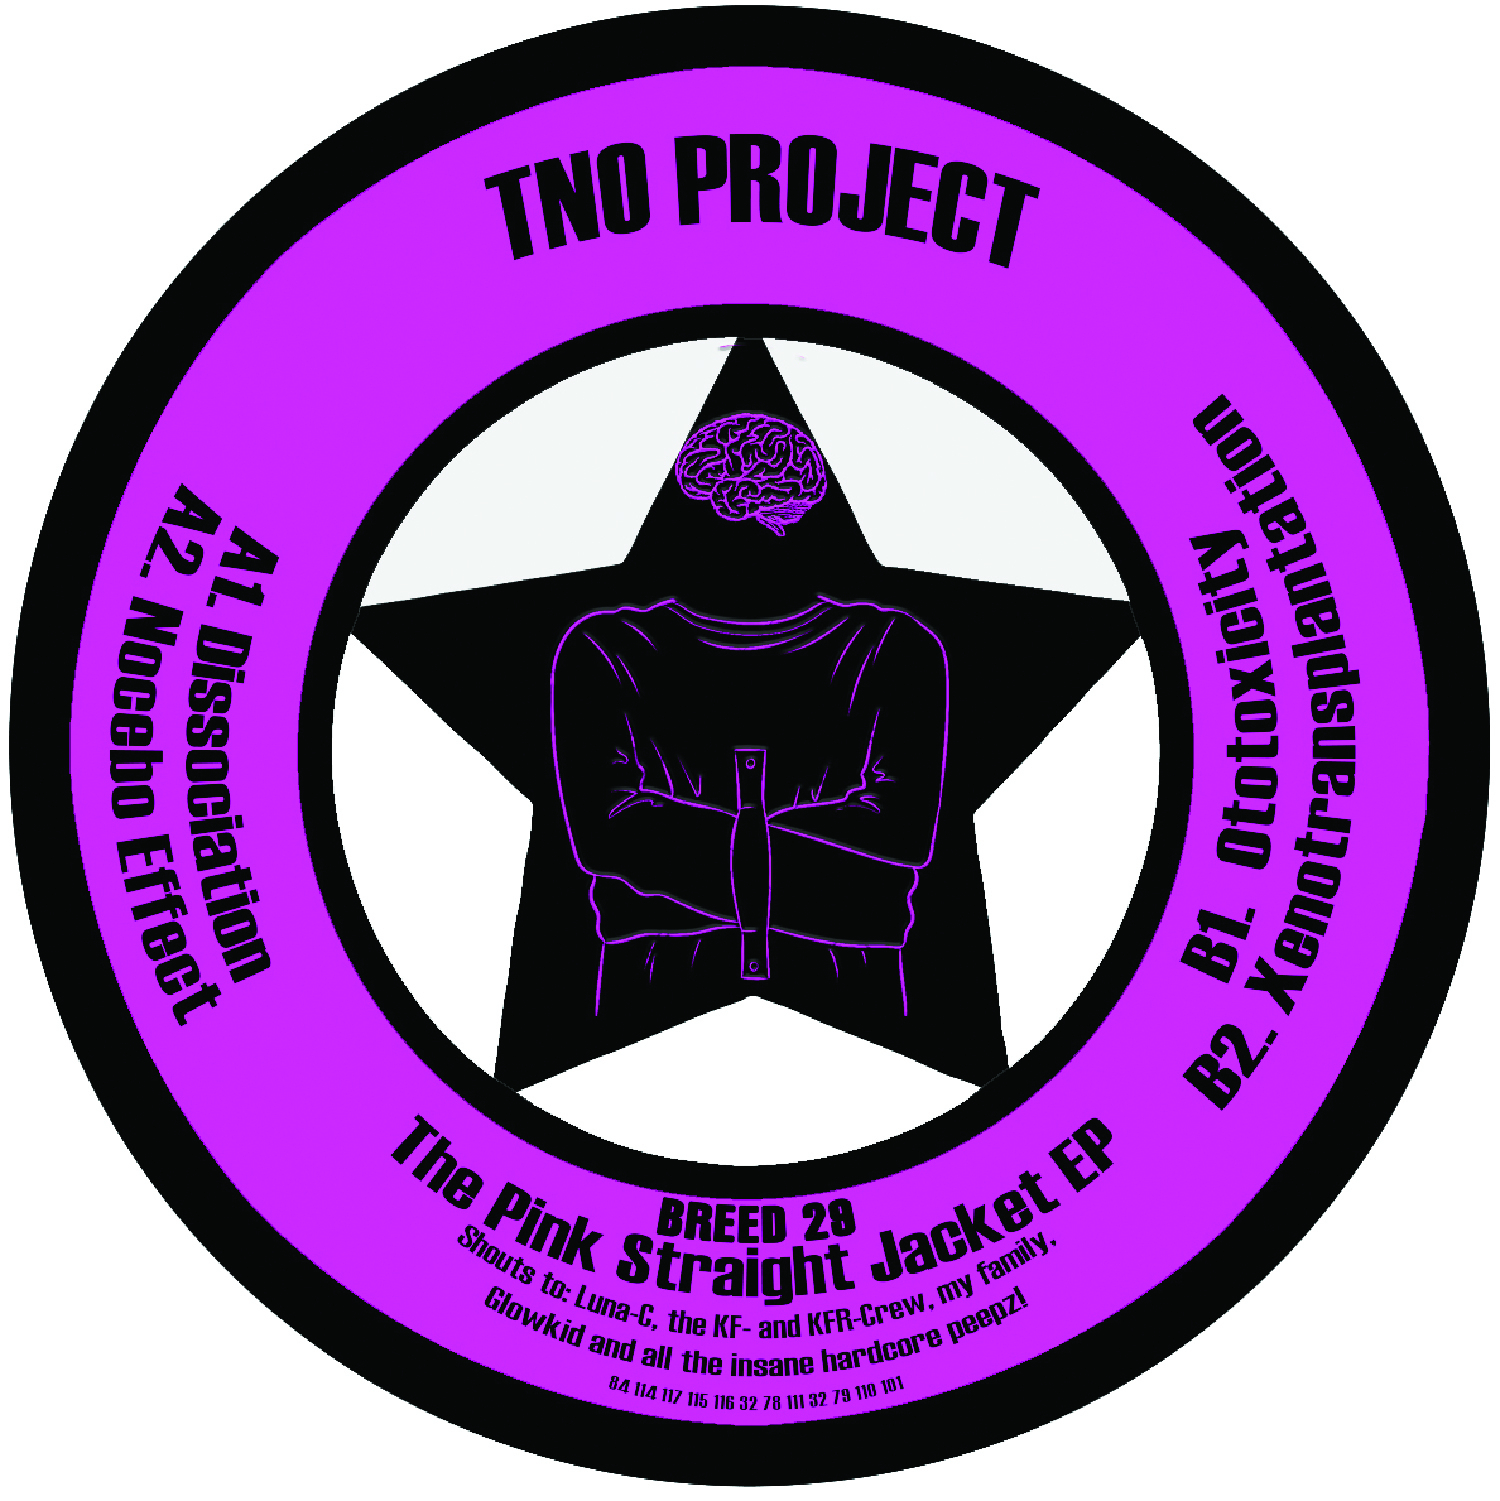 "[BREED029] TNO Project - The Pink Straight Jacket EP (12"" Vinyl + Digital)"